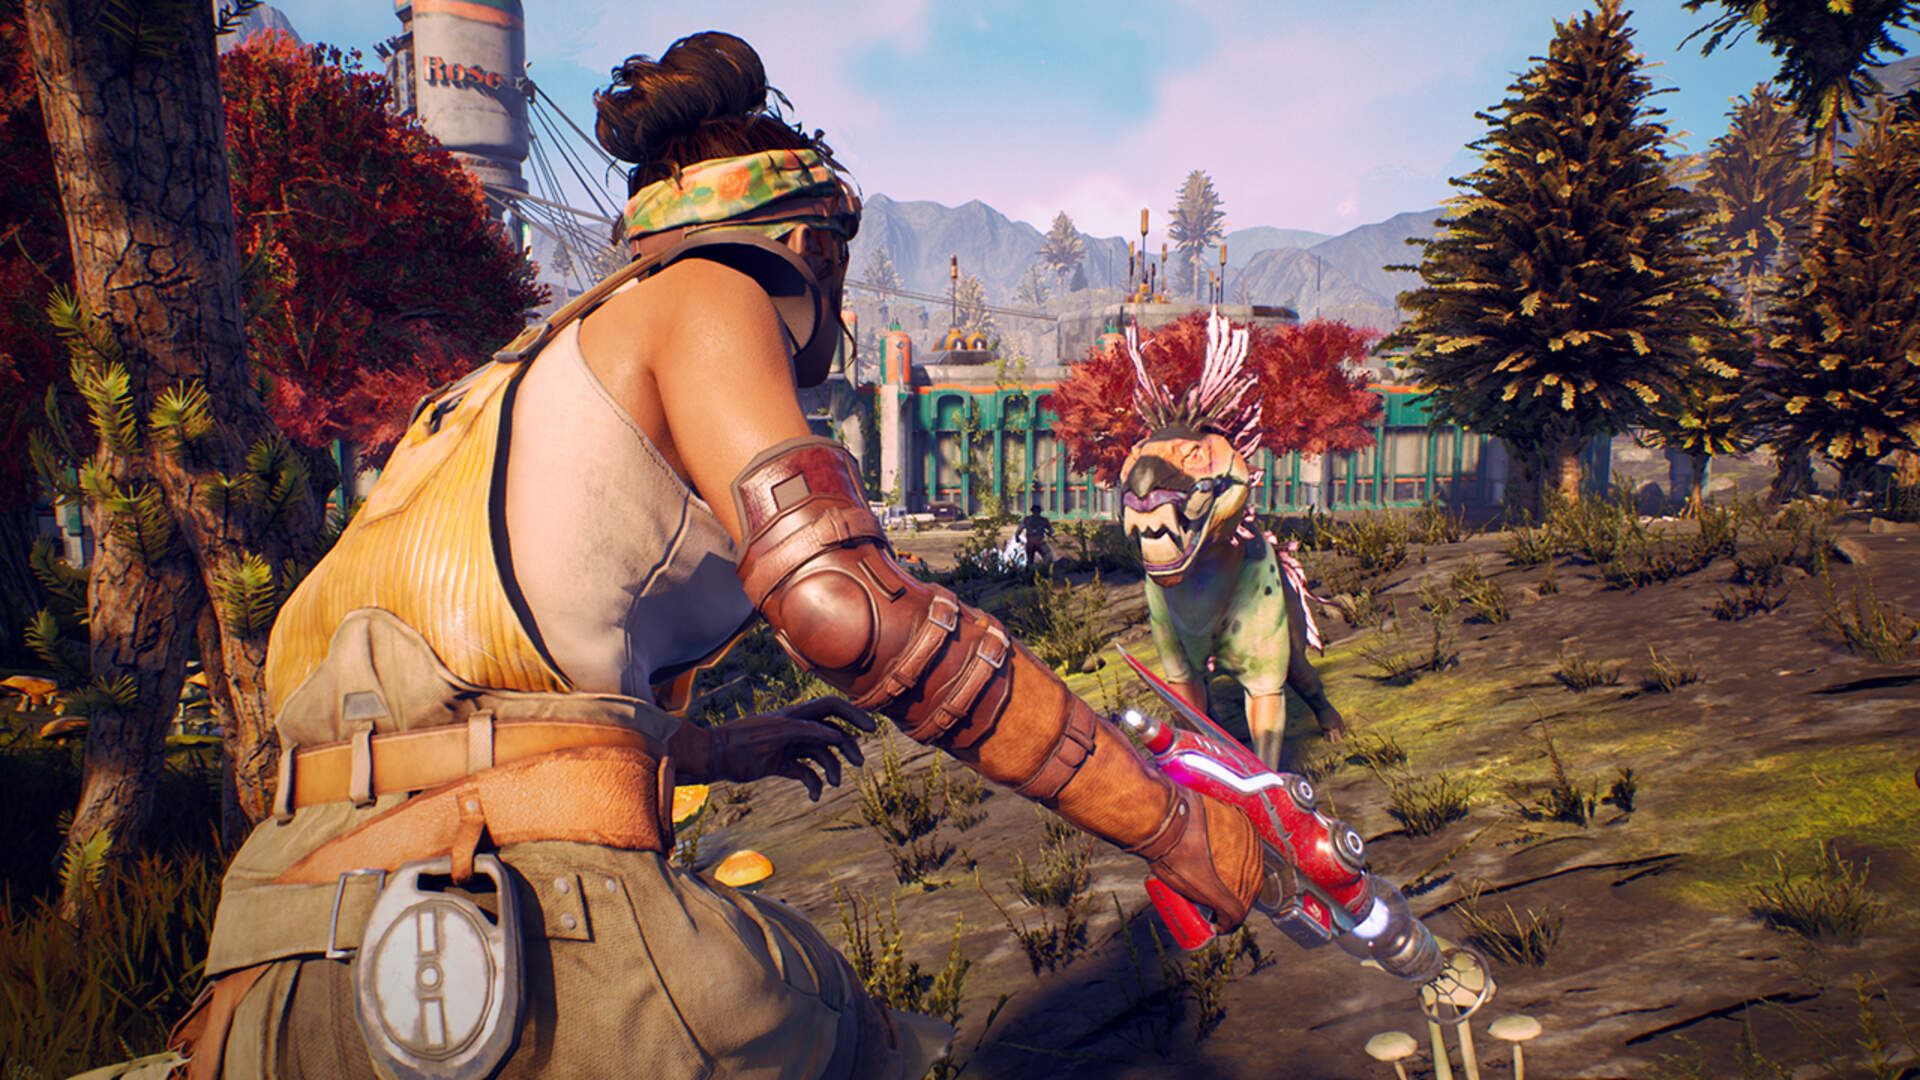 The Outer Worlds Hands-On: You Should Tap the Brakes Slightly on the Hype for Obsidian's Space RPG, But Not for the Reasons You Think